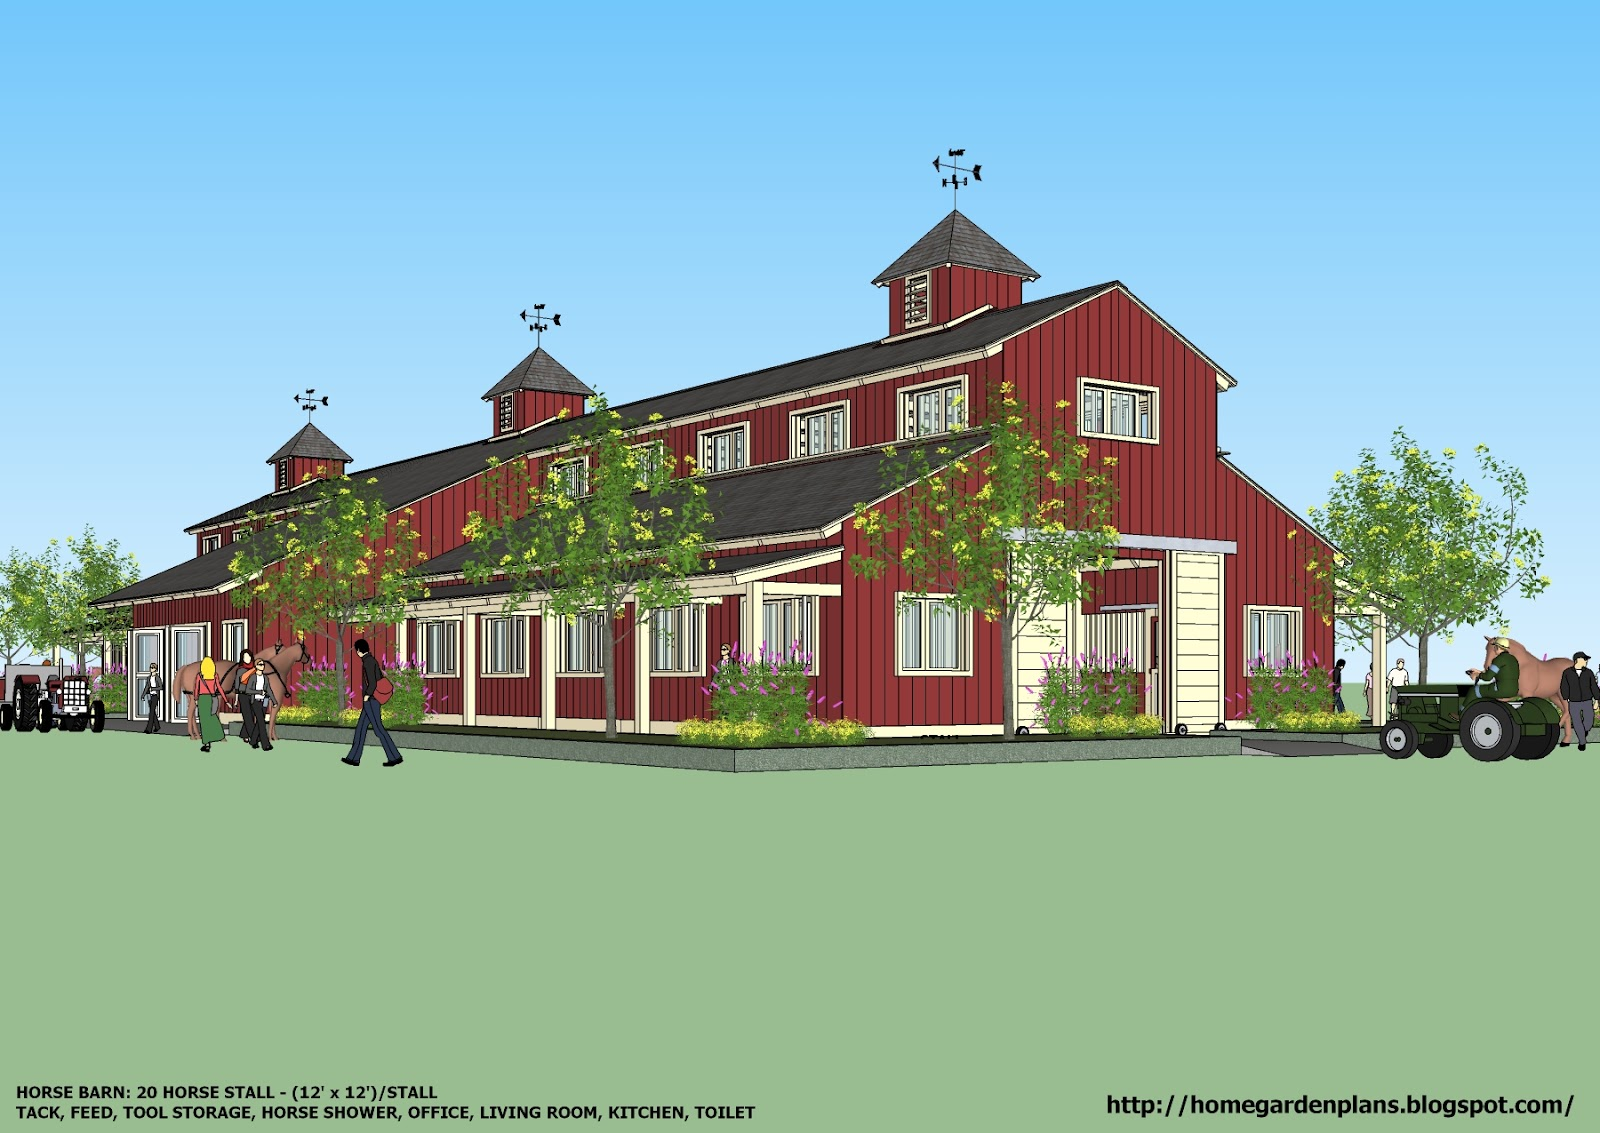 Home garden plans horse barns for Barn plans